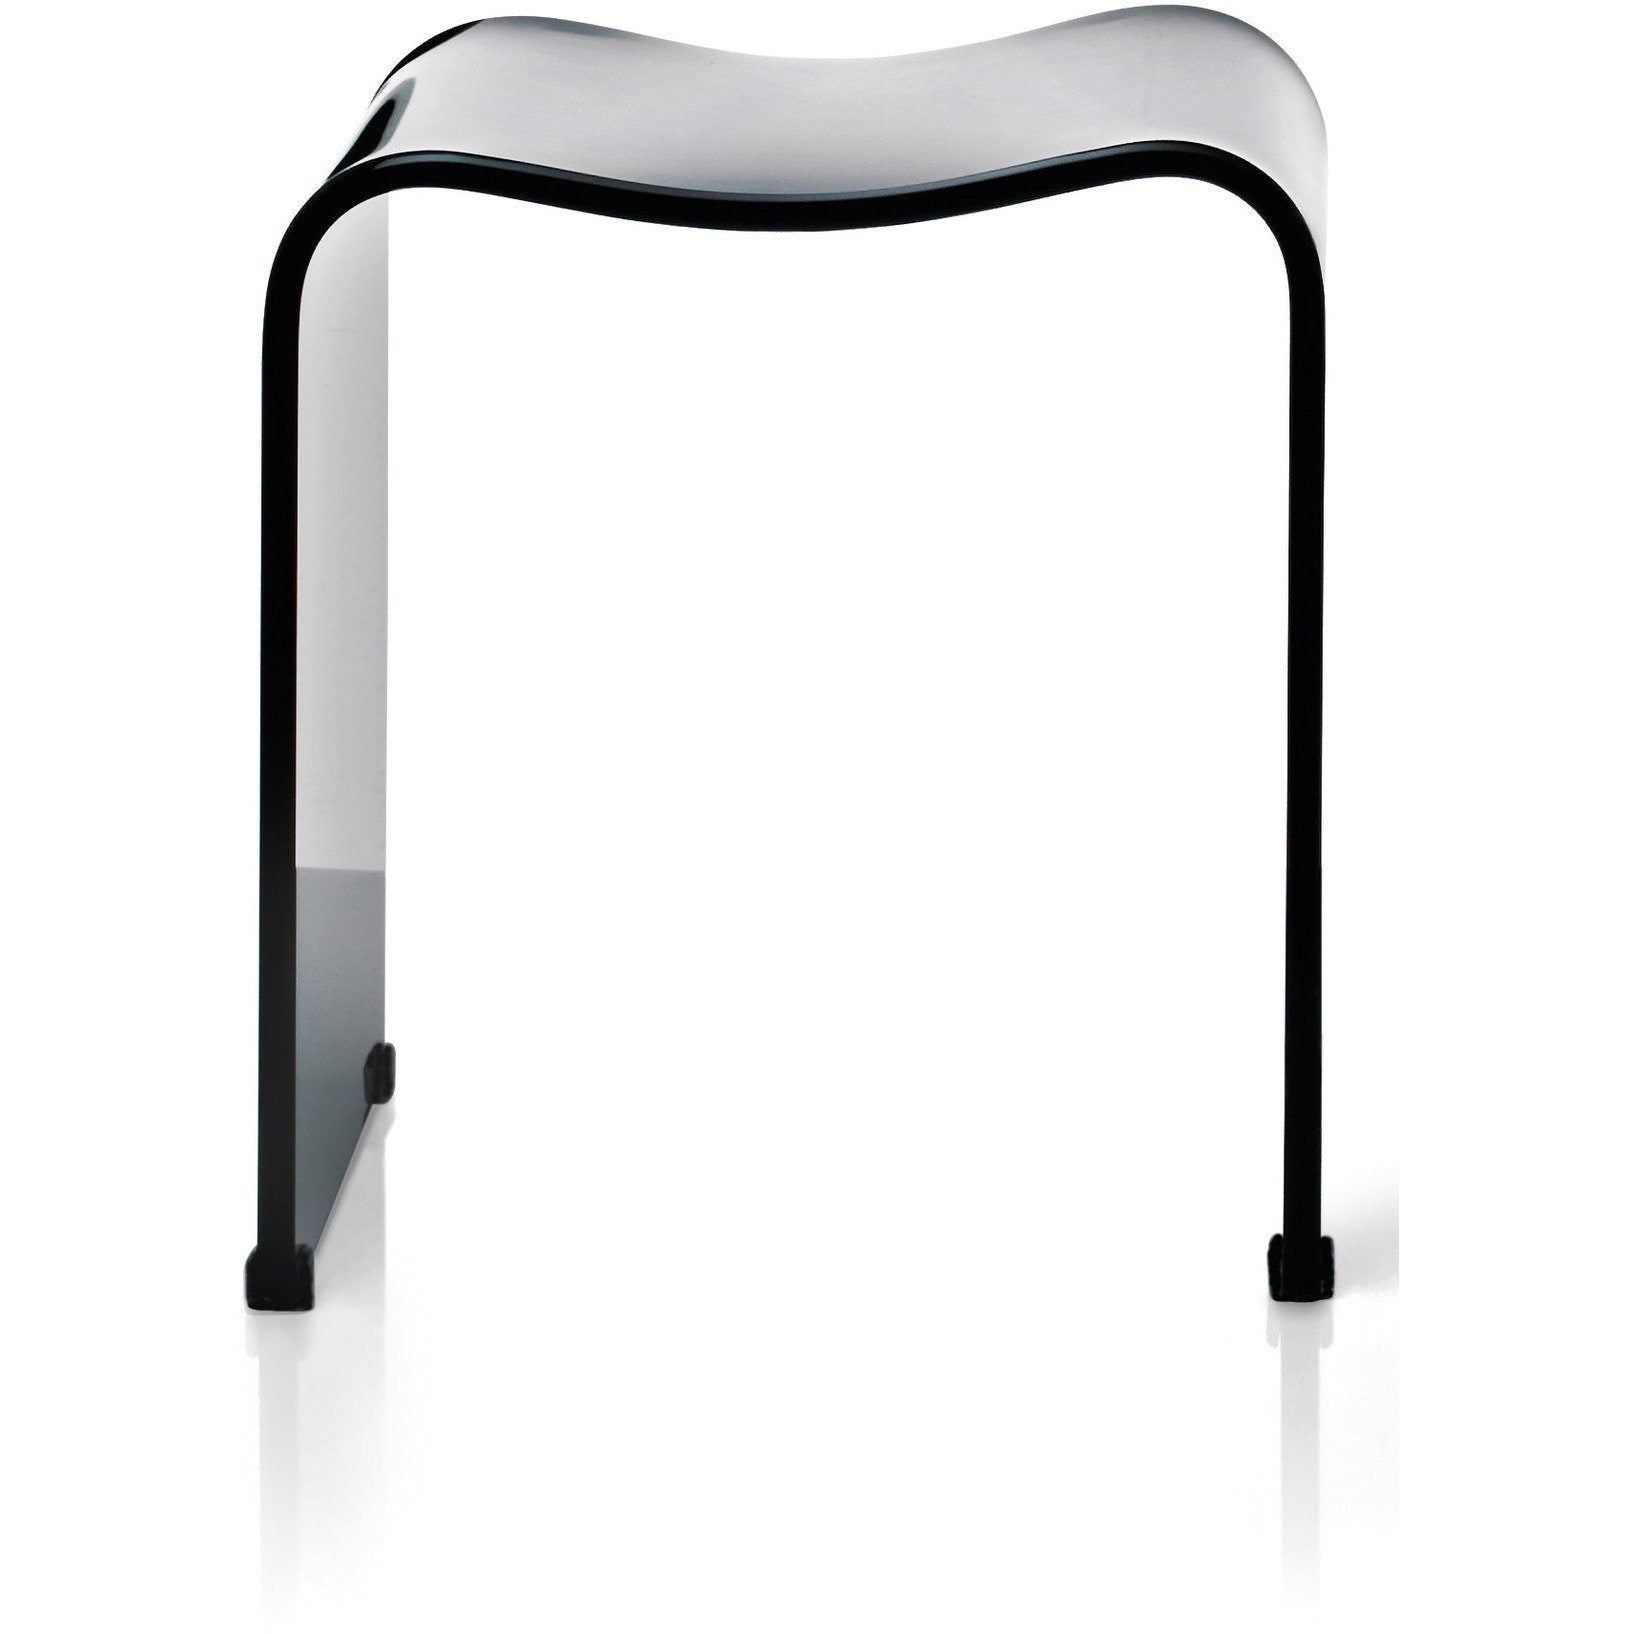 DW 80 Shower Bench Backless Archie Stool Chair for Bathroom Shower, Shiny Acrylic - AGM Home Store LLC